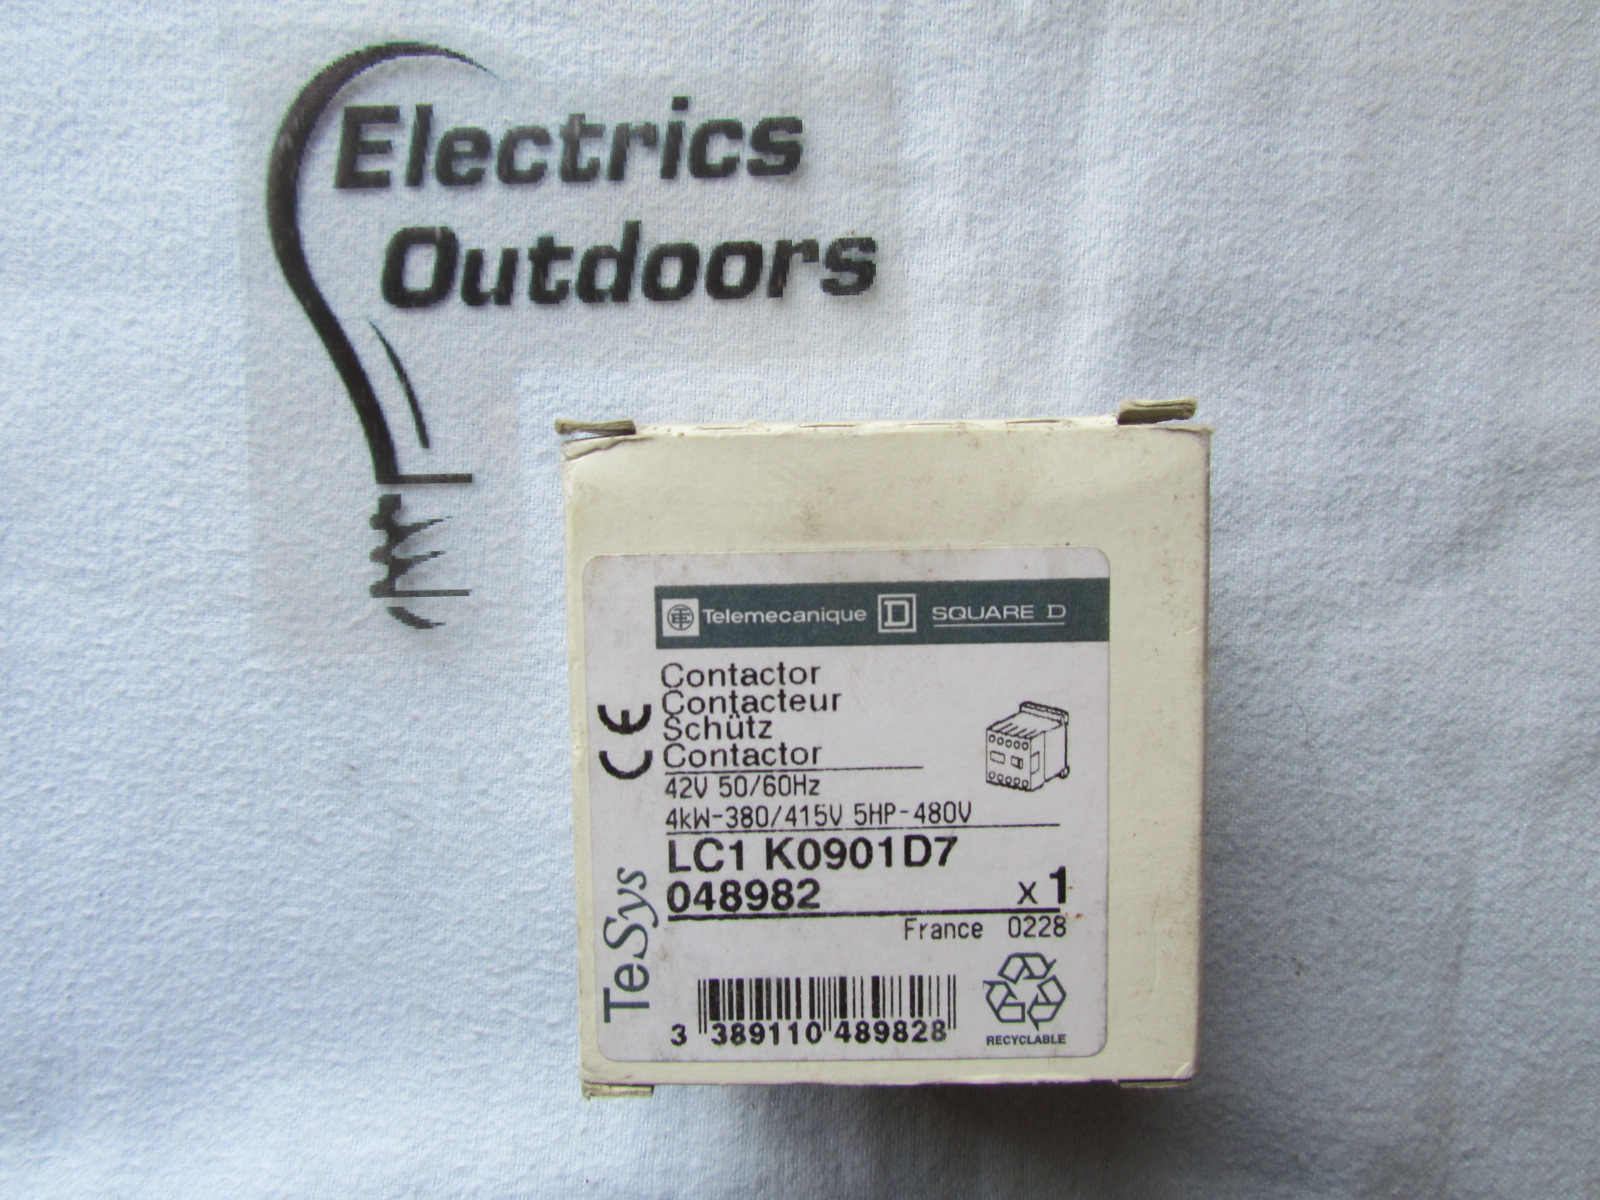 SQUARE D CONTACTOR 42V LC1 K0901 D7 TESYS 4kW-380/415V